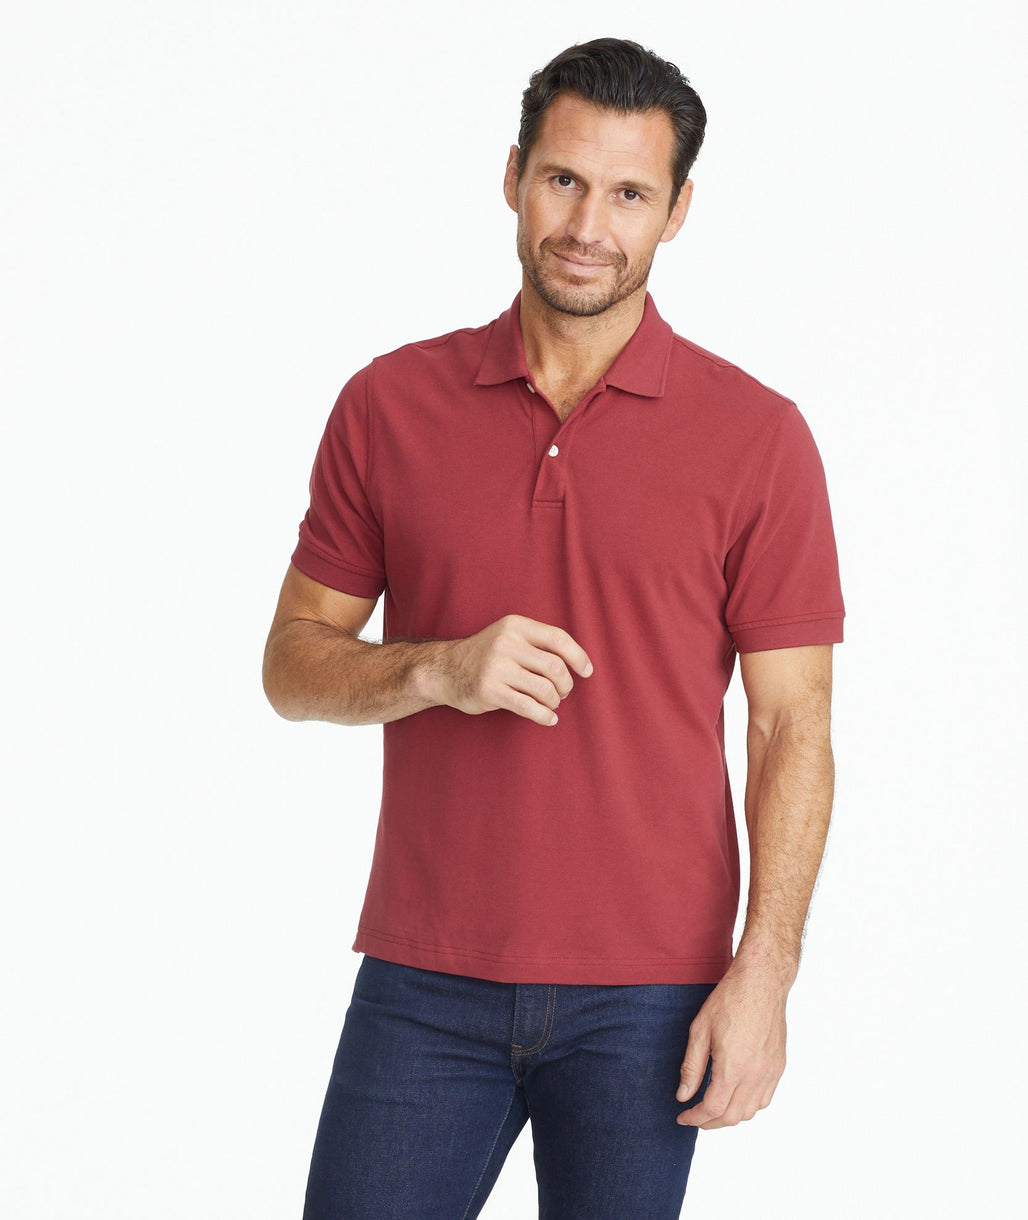 Model wearing a Dark Red The Classic Pique Polo